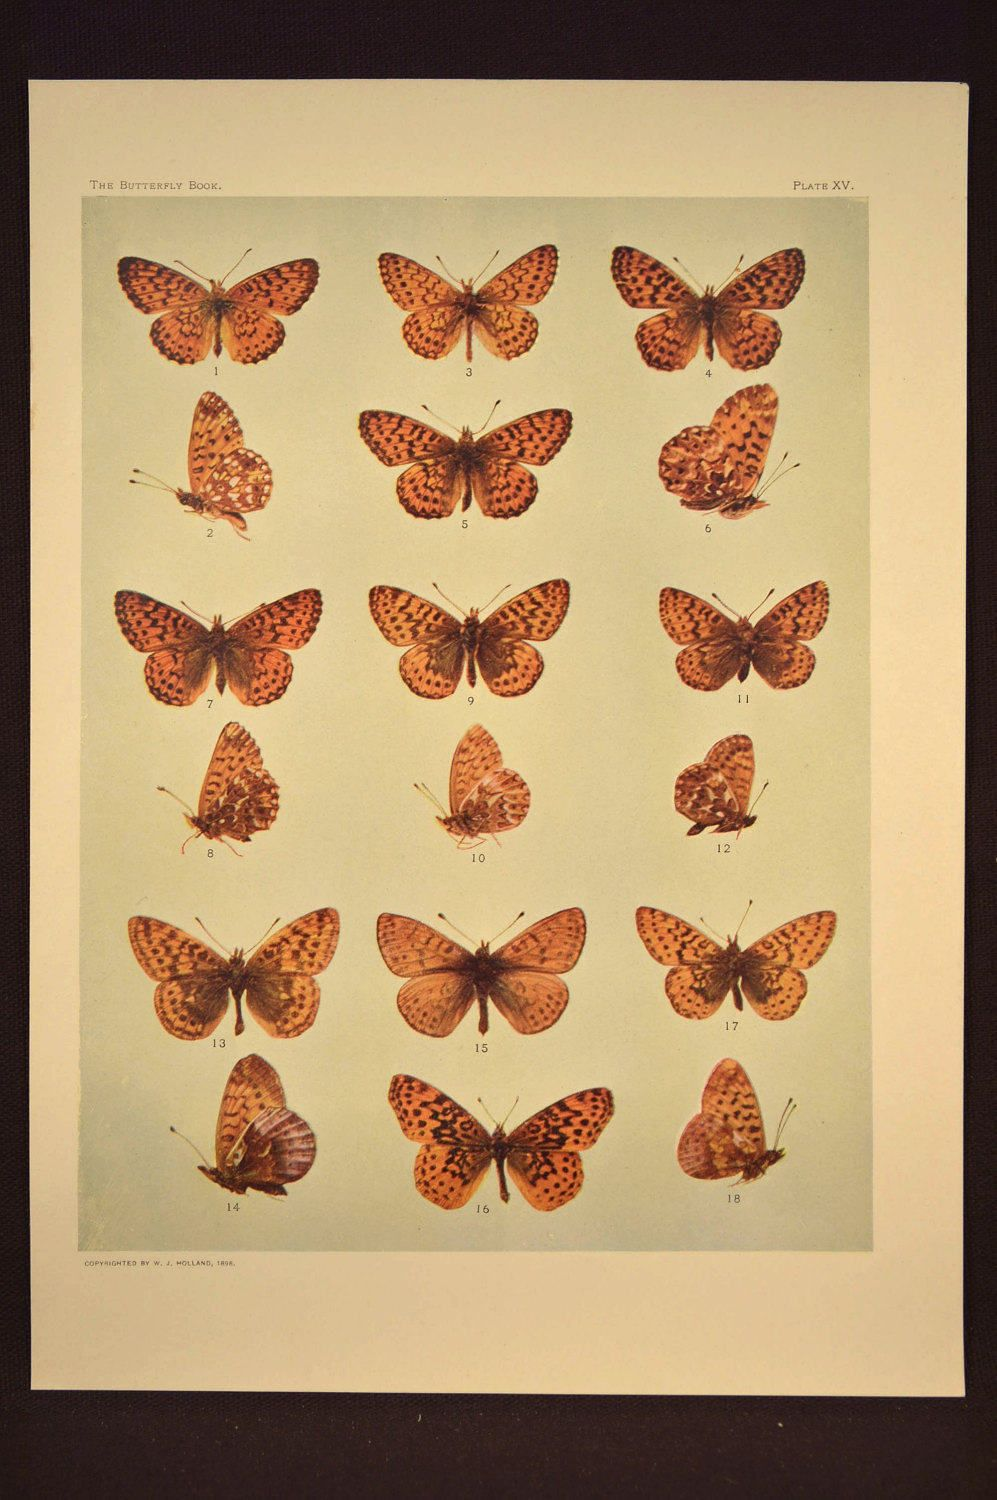 Funky Wall Decoration With Butterfly Image - Wall Art Collections ...